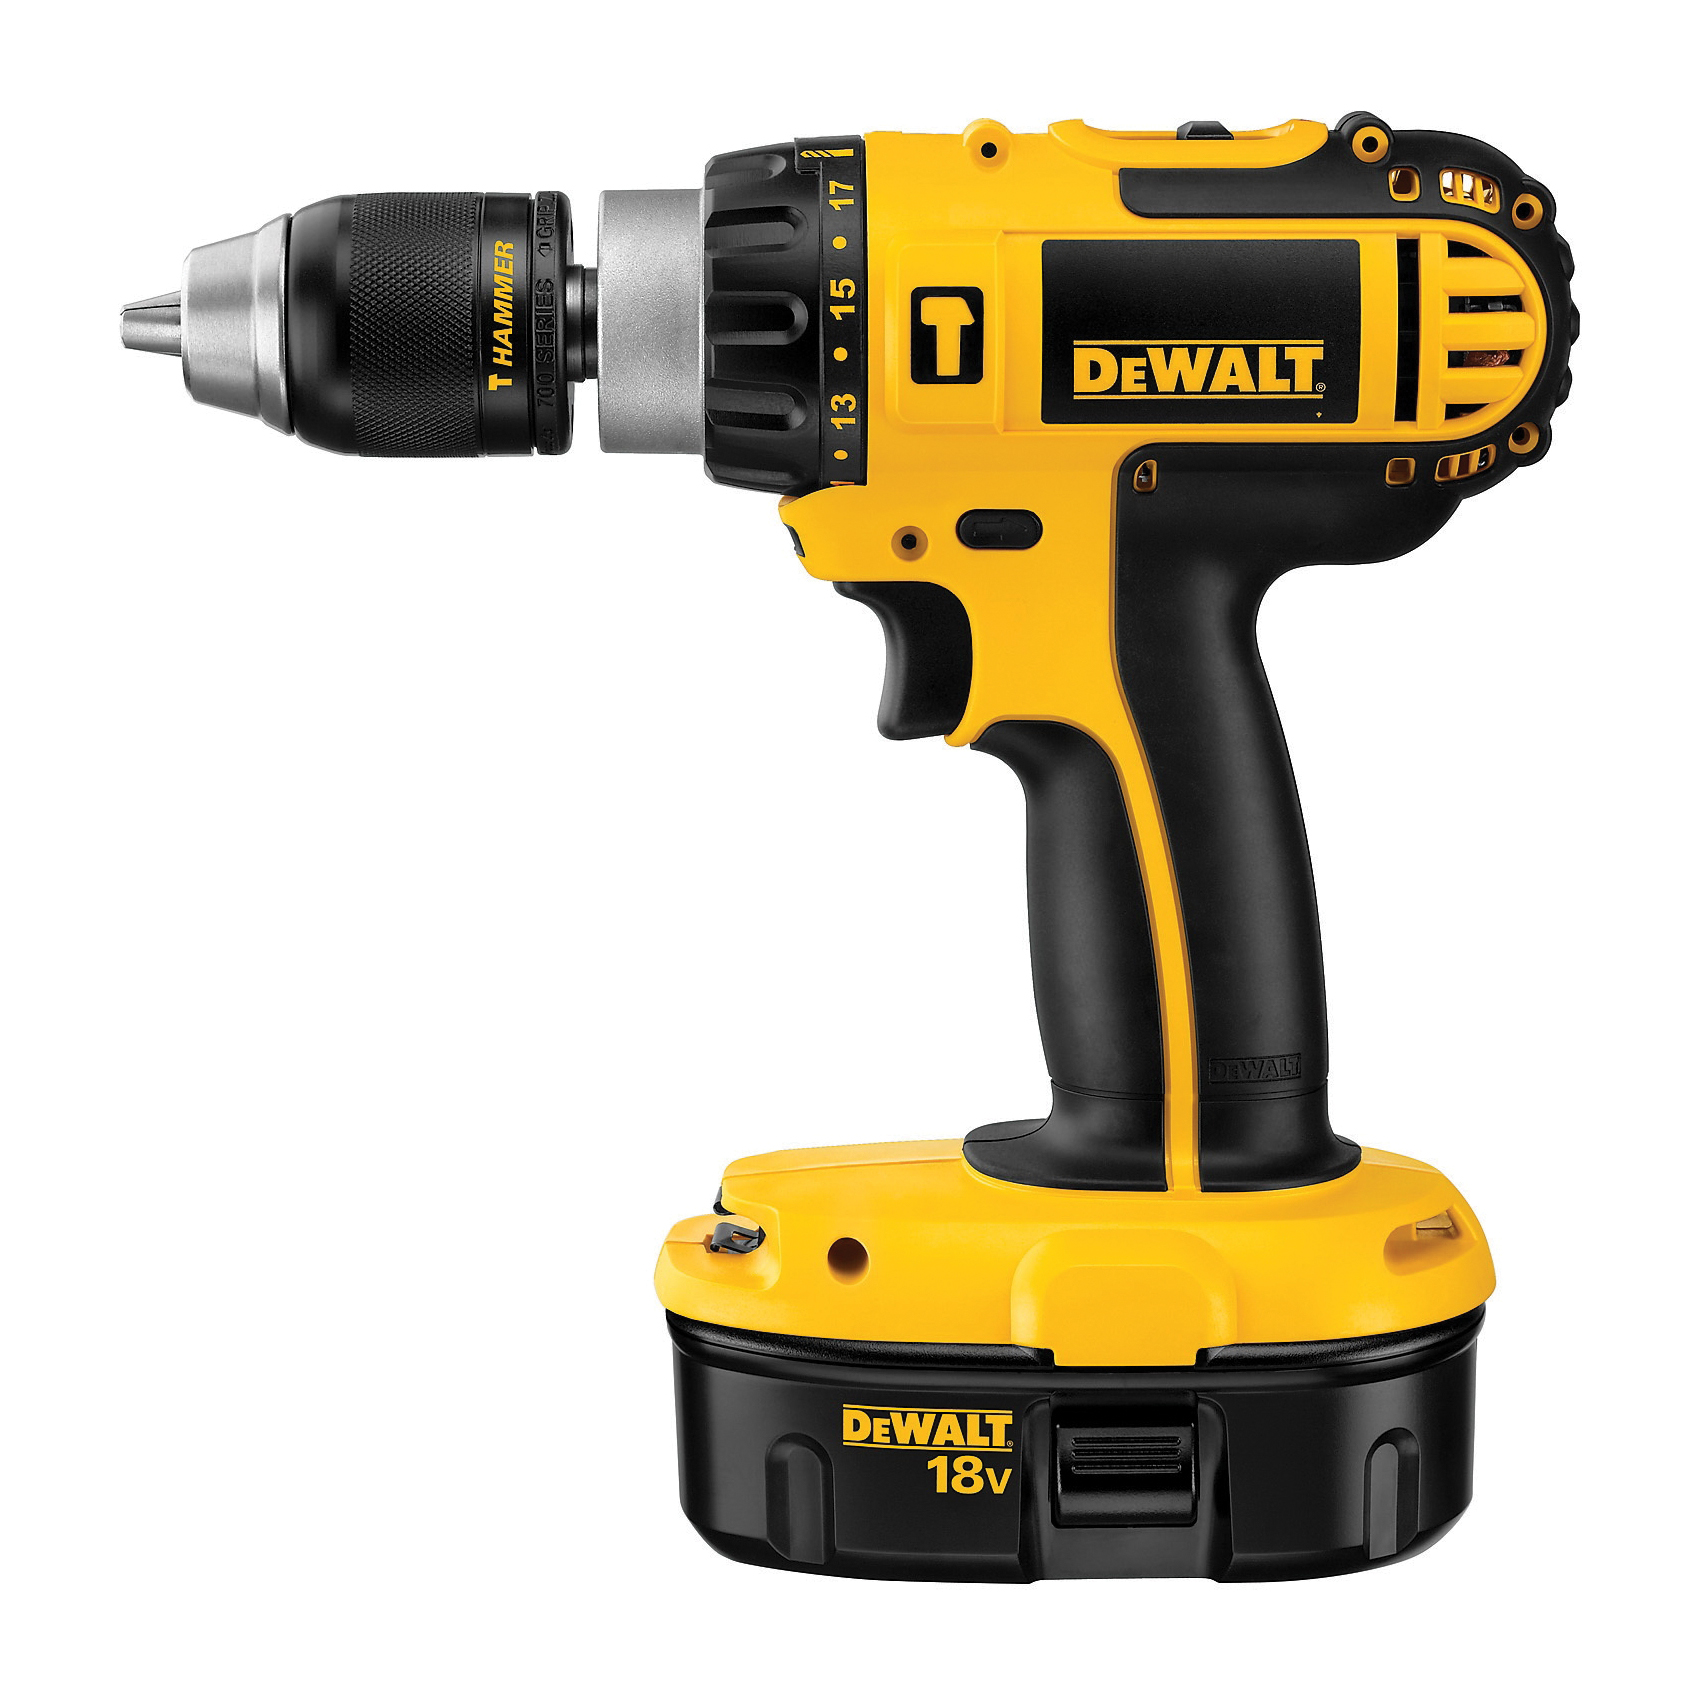 DeWALT® DC725KA Compact Cordless Hammer Drill Kit, 1/2 in Metal Ratcheting Chuck, 18 VDC, 0 to 500/0 to 1700 rpm No-Load, NiCd Battery